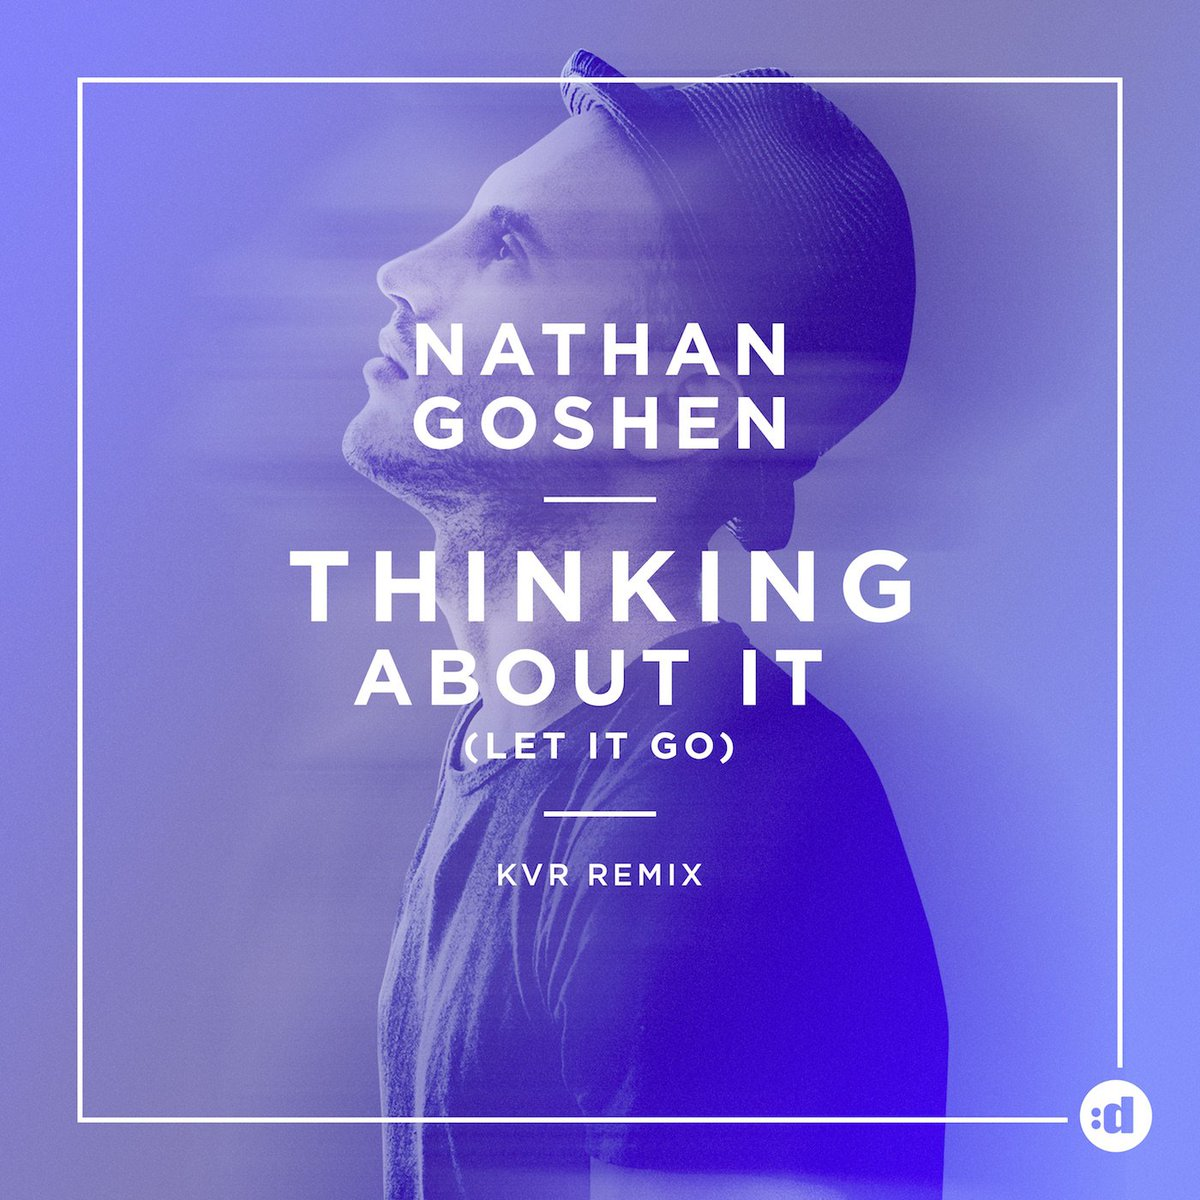 nathan goshen thinking about it рингтон скачать